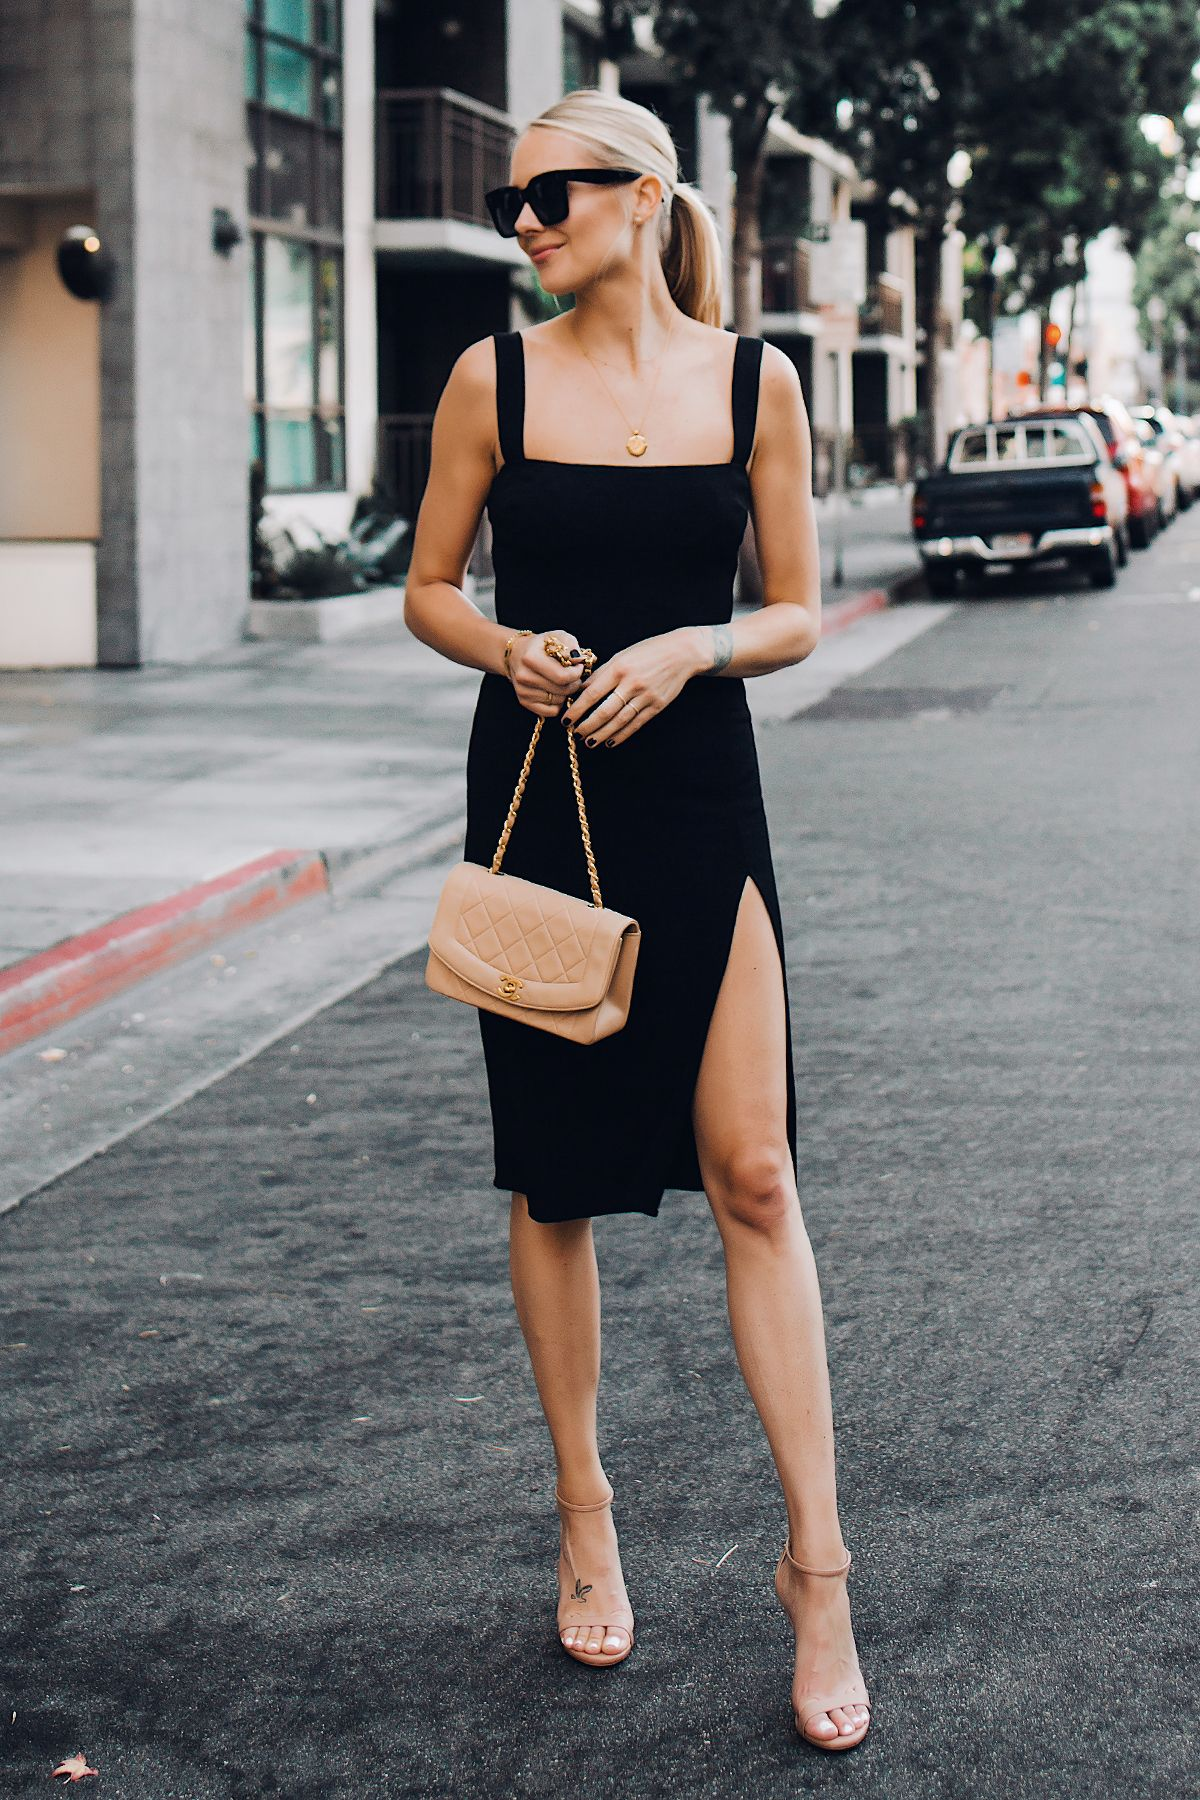 Blonde Woman Wearing Reformation Black Dress Tan Ankle Strap Heeled Sandals Chanel Tan Diana Handbag Gold Coin Neck Dress And Heels Fashion Black Dress Outfits [ 1800 x 1200 Pixel ]